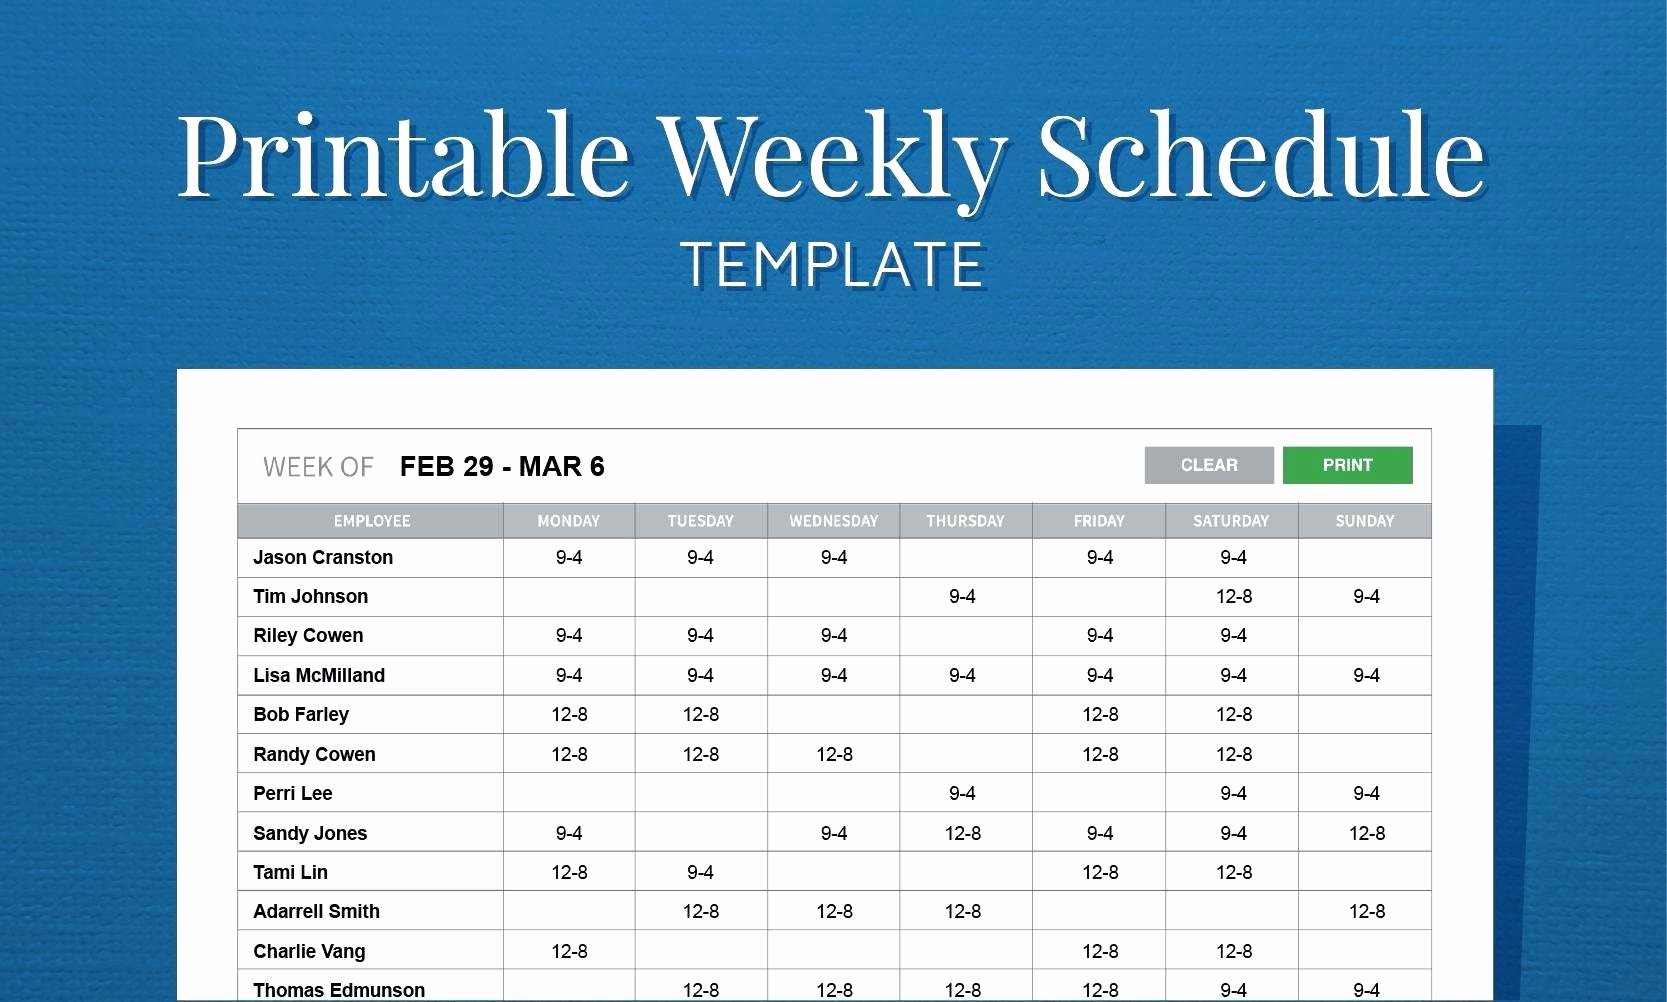 Employee Daily Work Schedule Template Awesome Daily Work Schedule Template